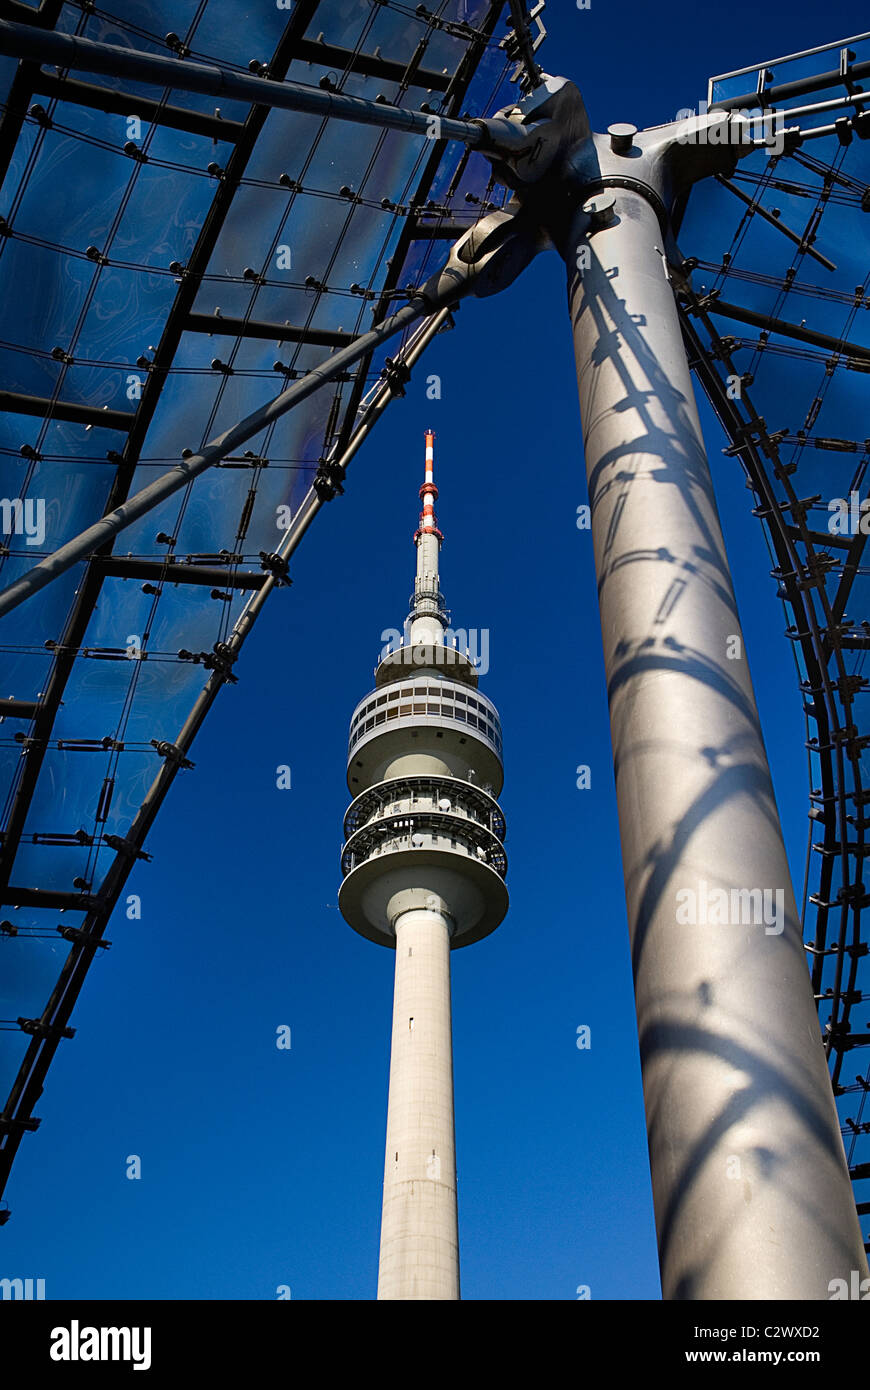 Germany Bavaria Munich 1972 Olympic Stadium section of acrylic glass canopy roof and Olympic Tower. - Stock Image